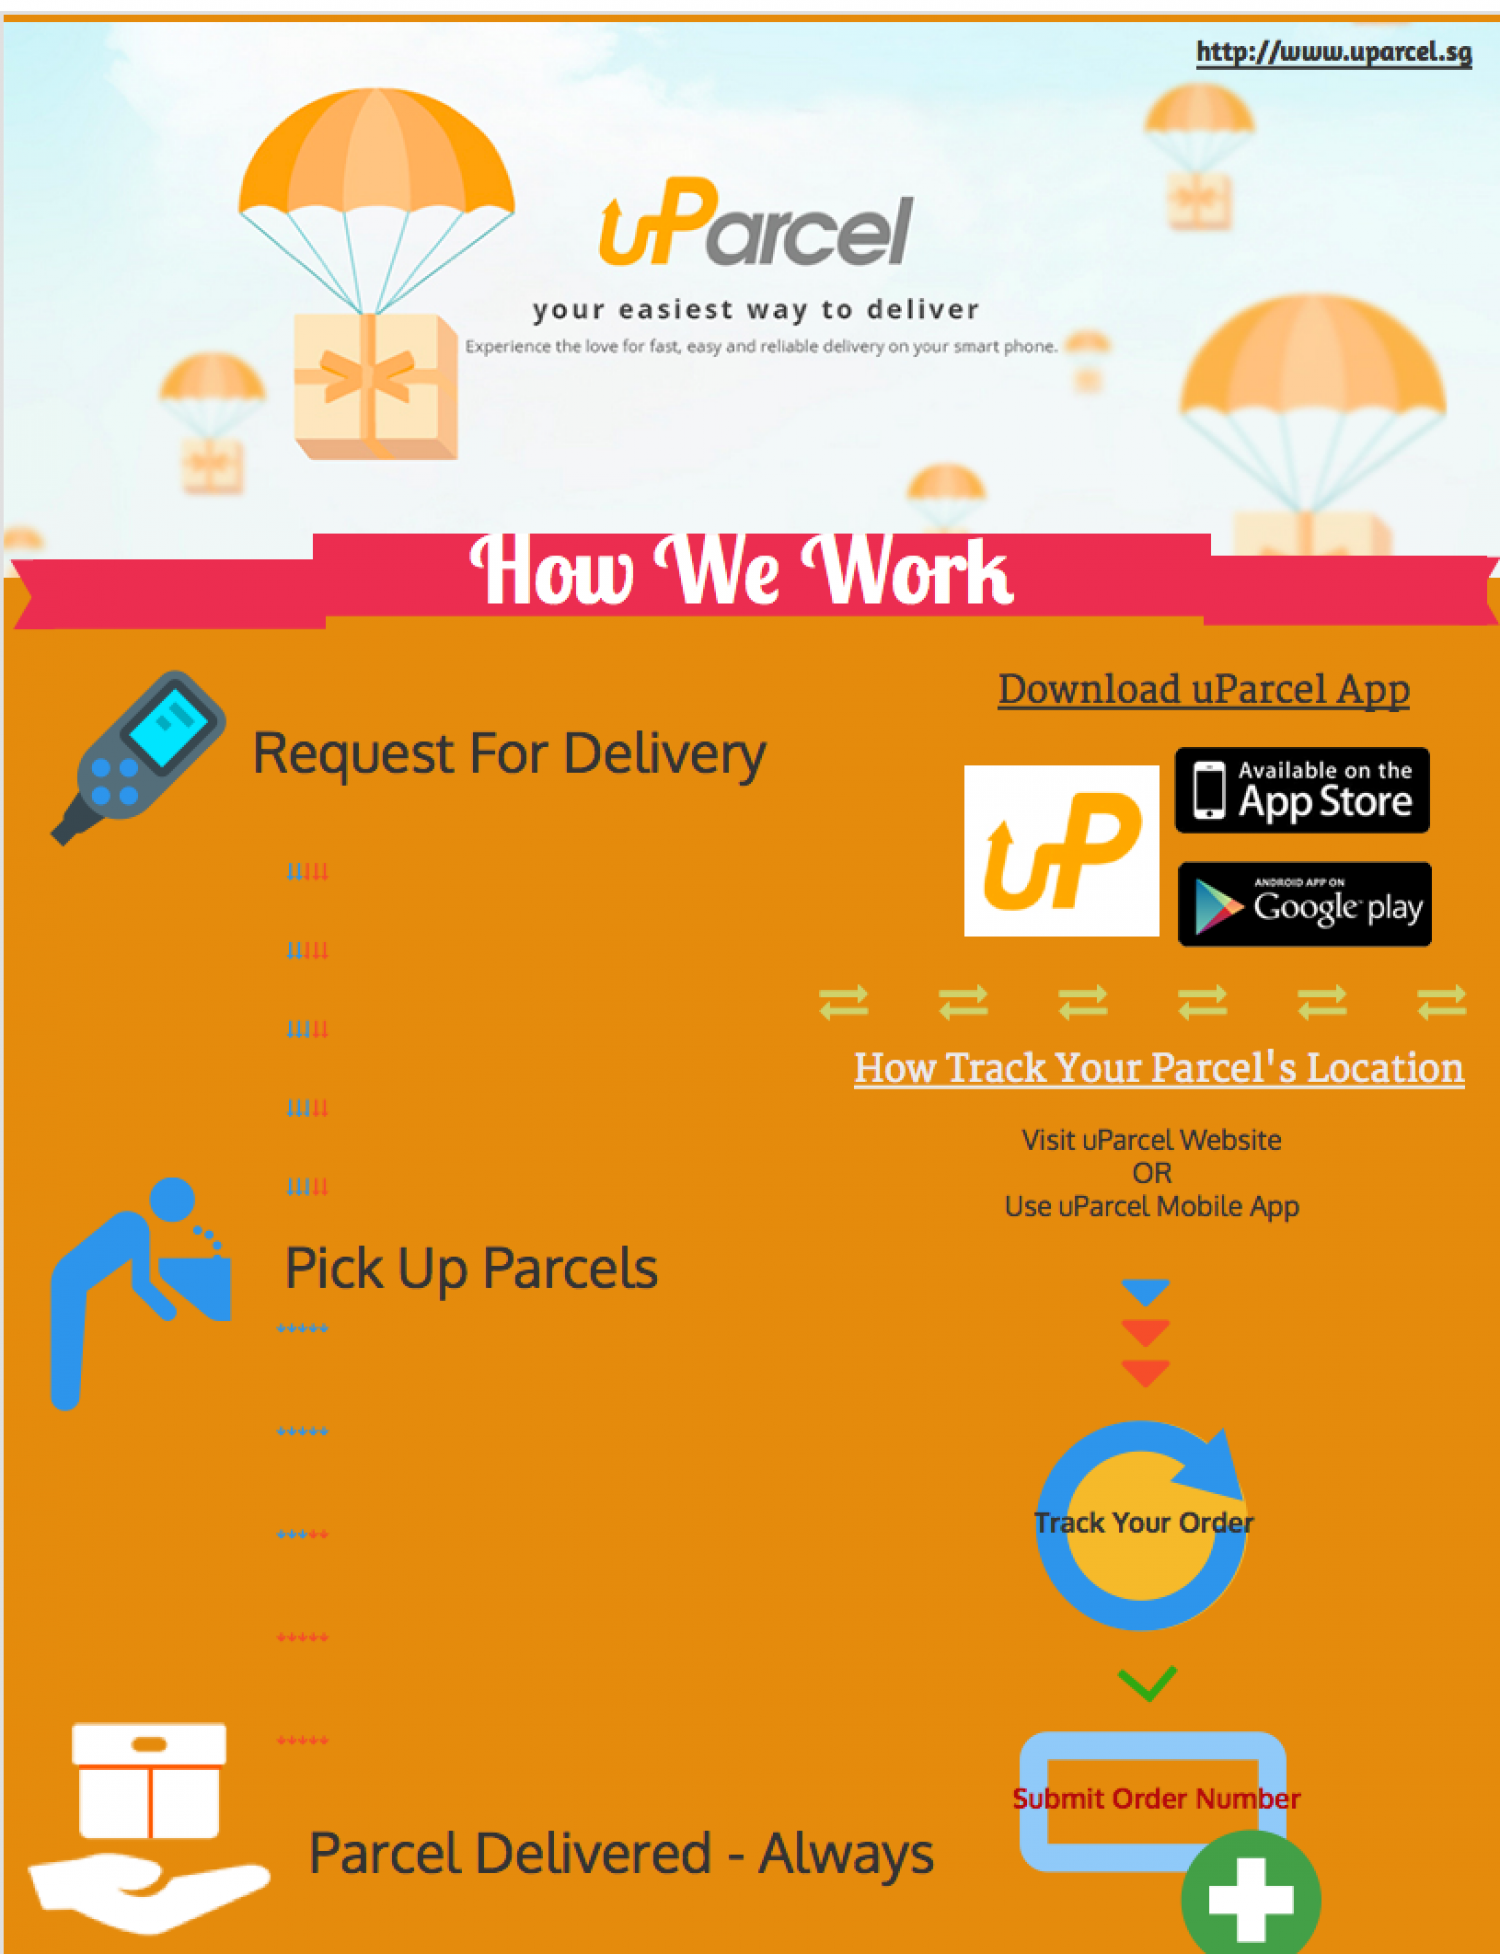 uParcel - Parcel and courier delivery service in Singapore